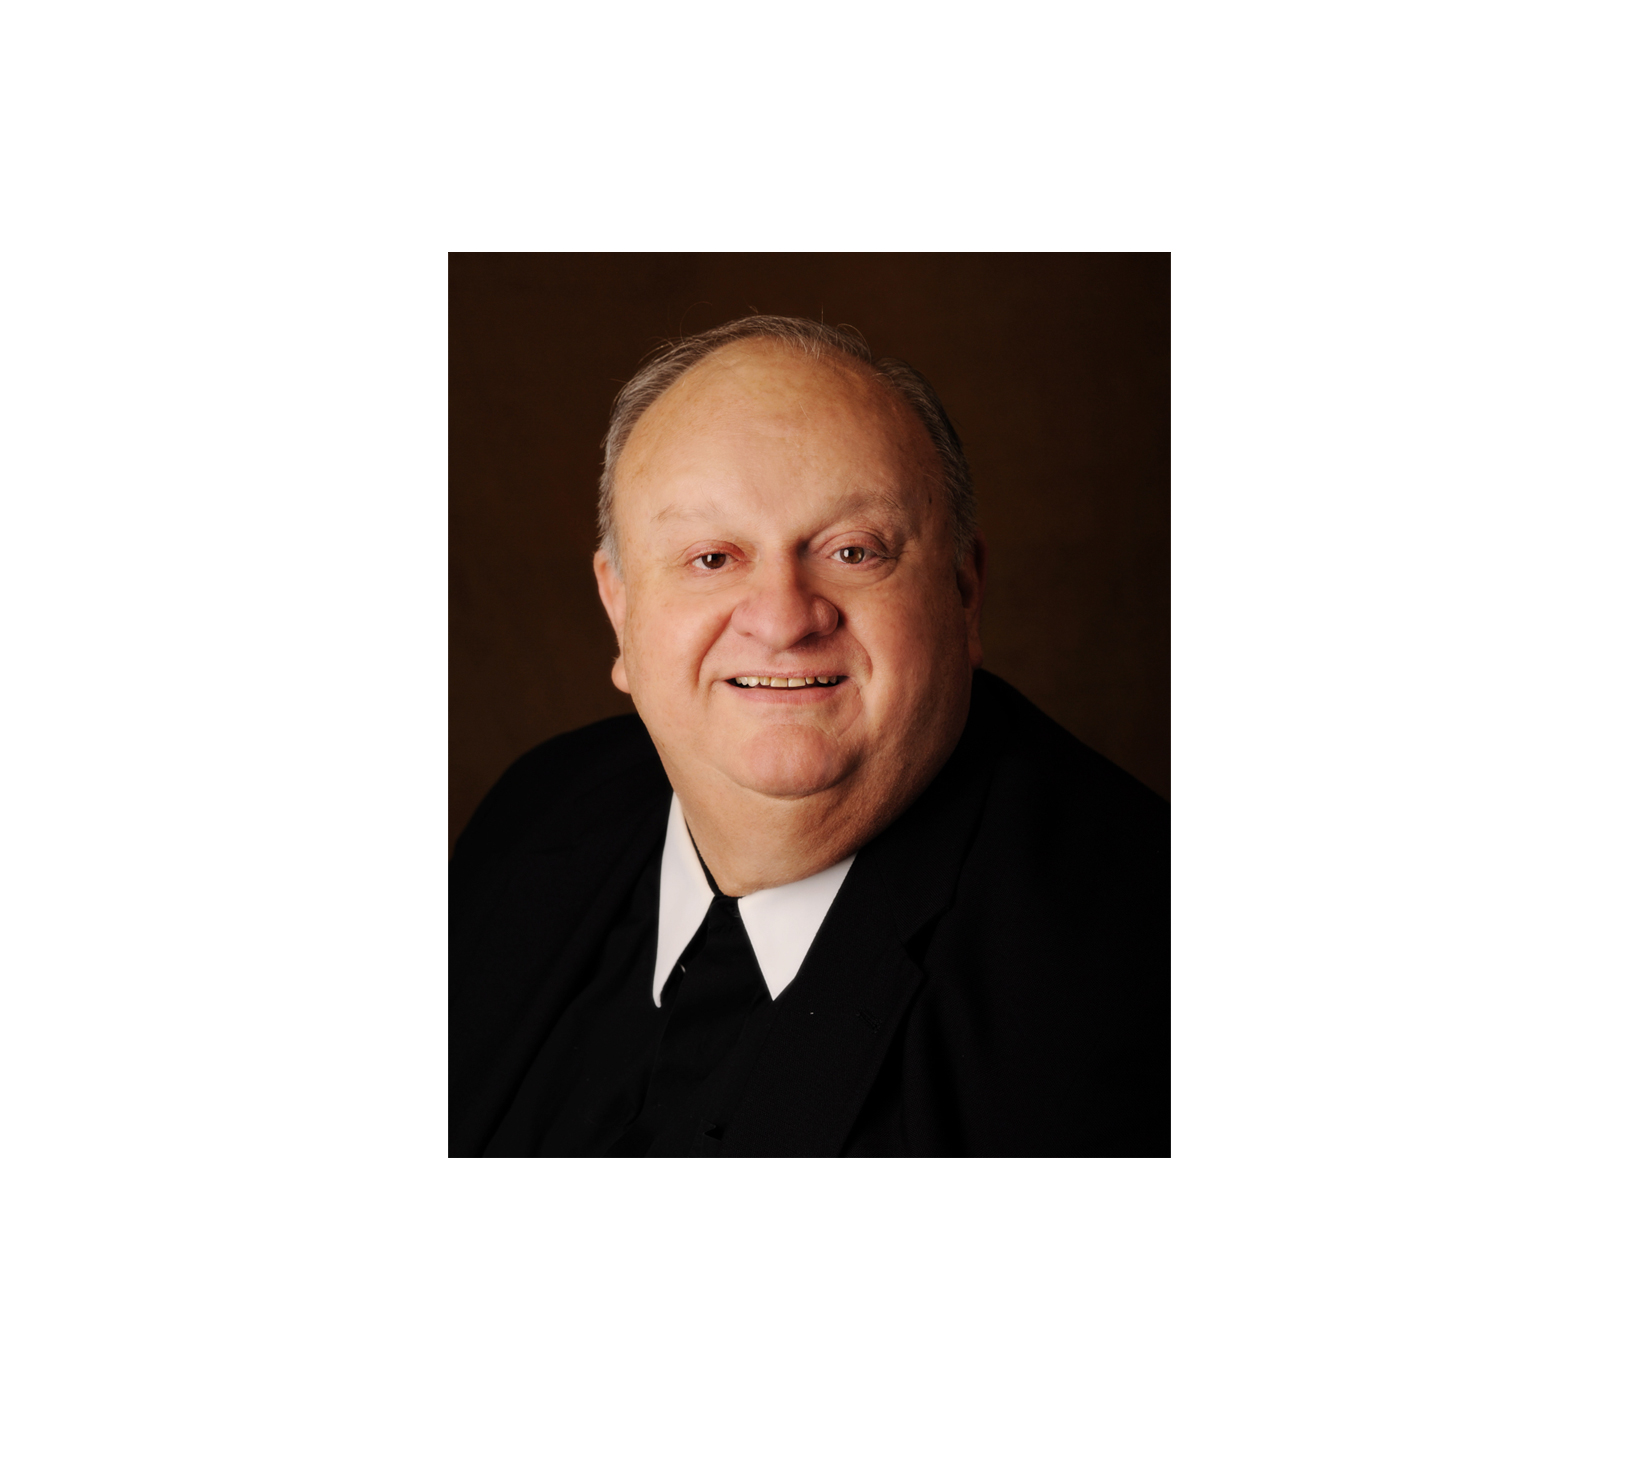 SMC's #300LaSalle Academic Convocation recognizes Brother Louis DeThomasis, FSC, president emeritus at Saint Mary's University of Minnesota. He will receive an honorary doctorate at the Convocation on Wednesday, May 1, 2019.